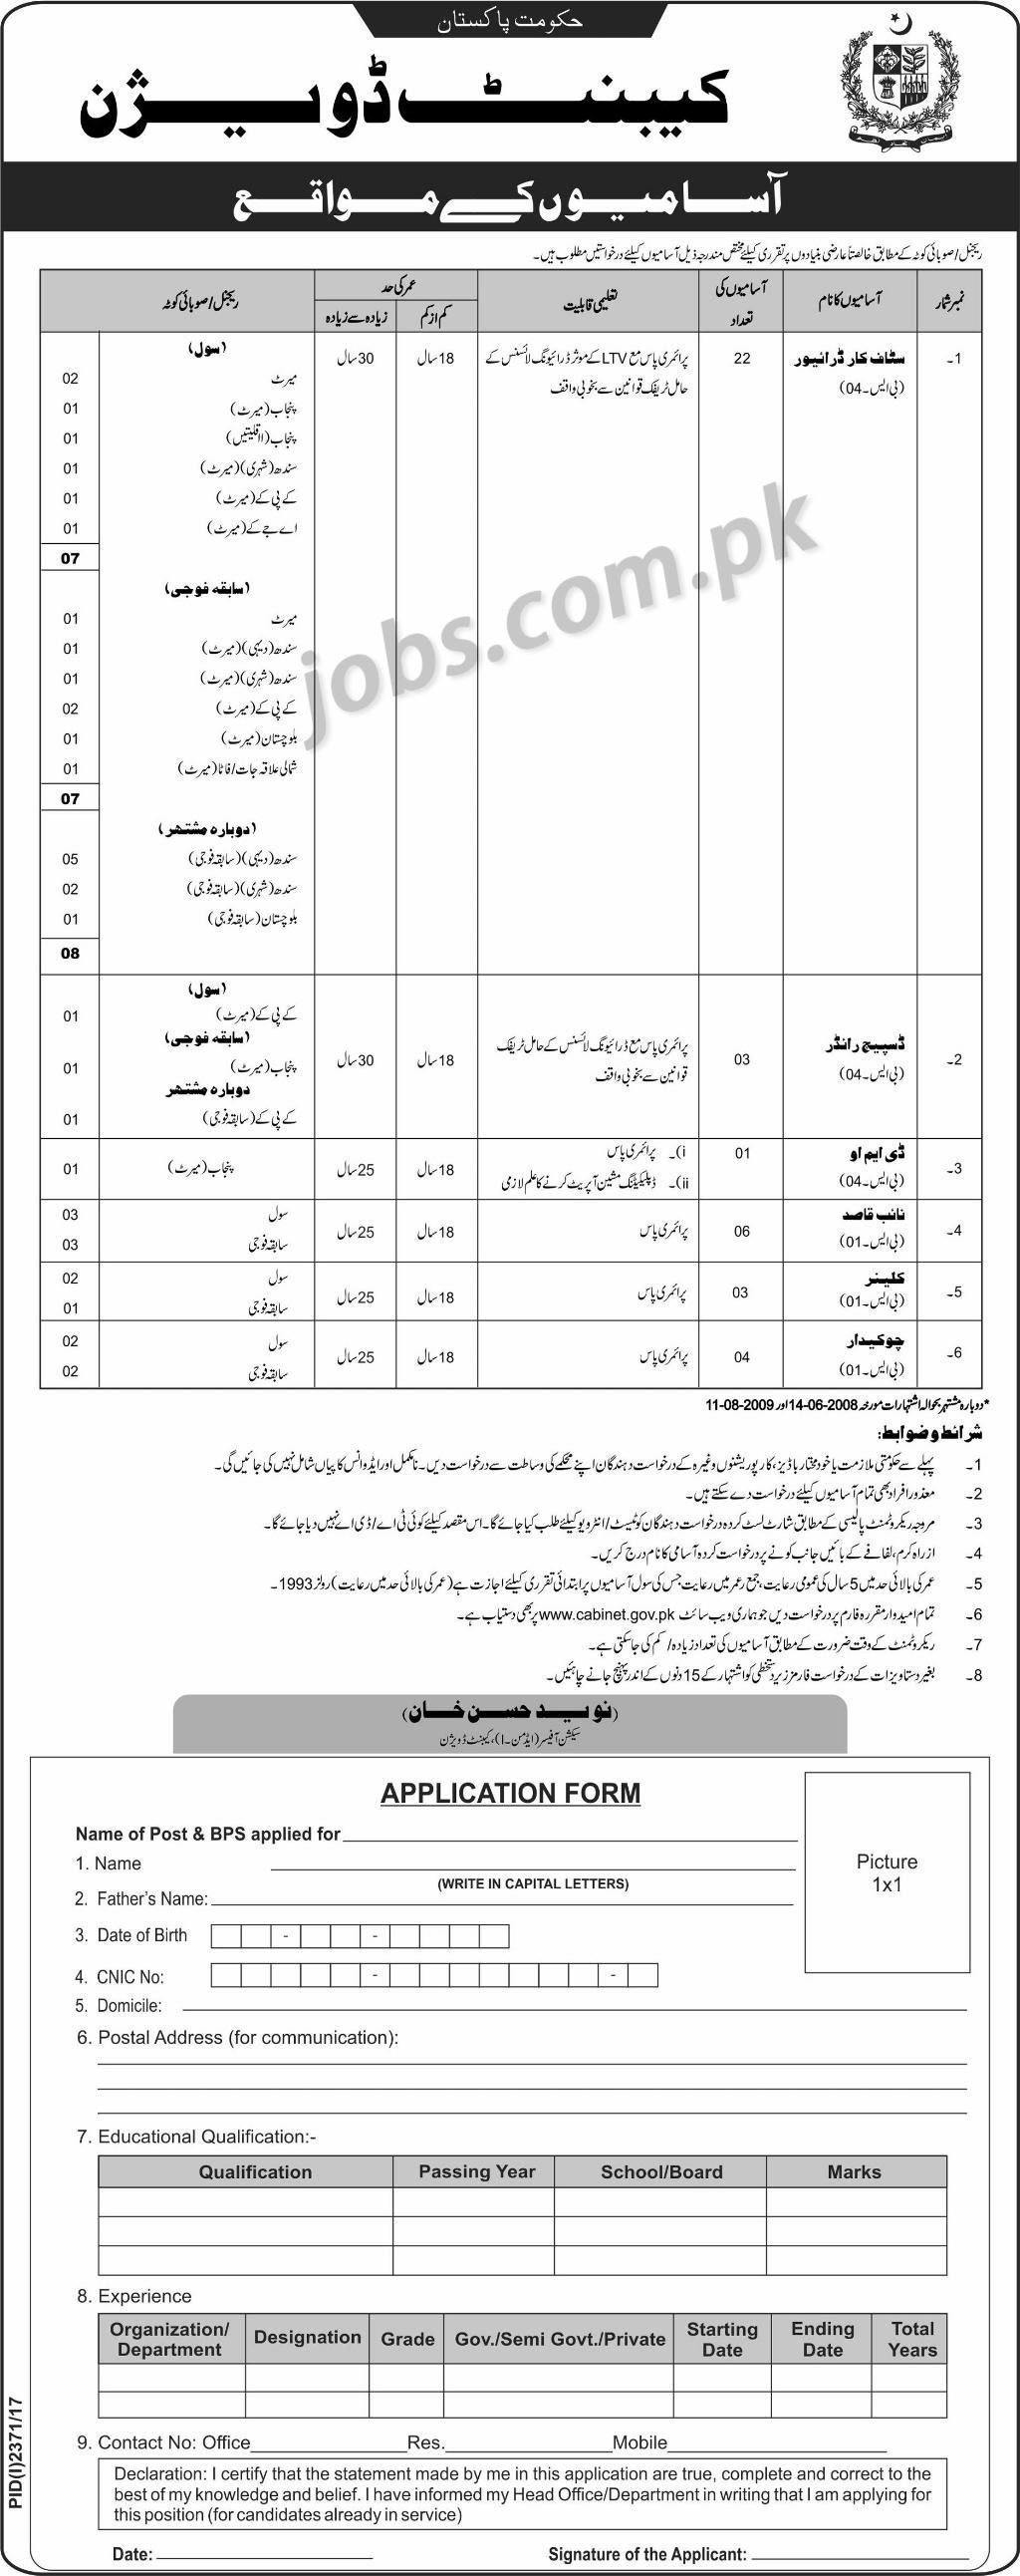 application form for federal government jobs